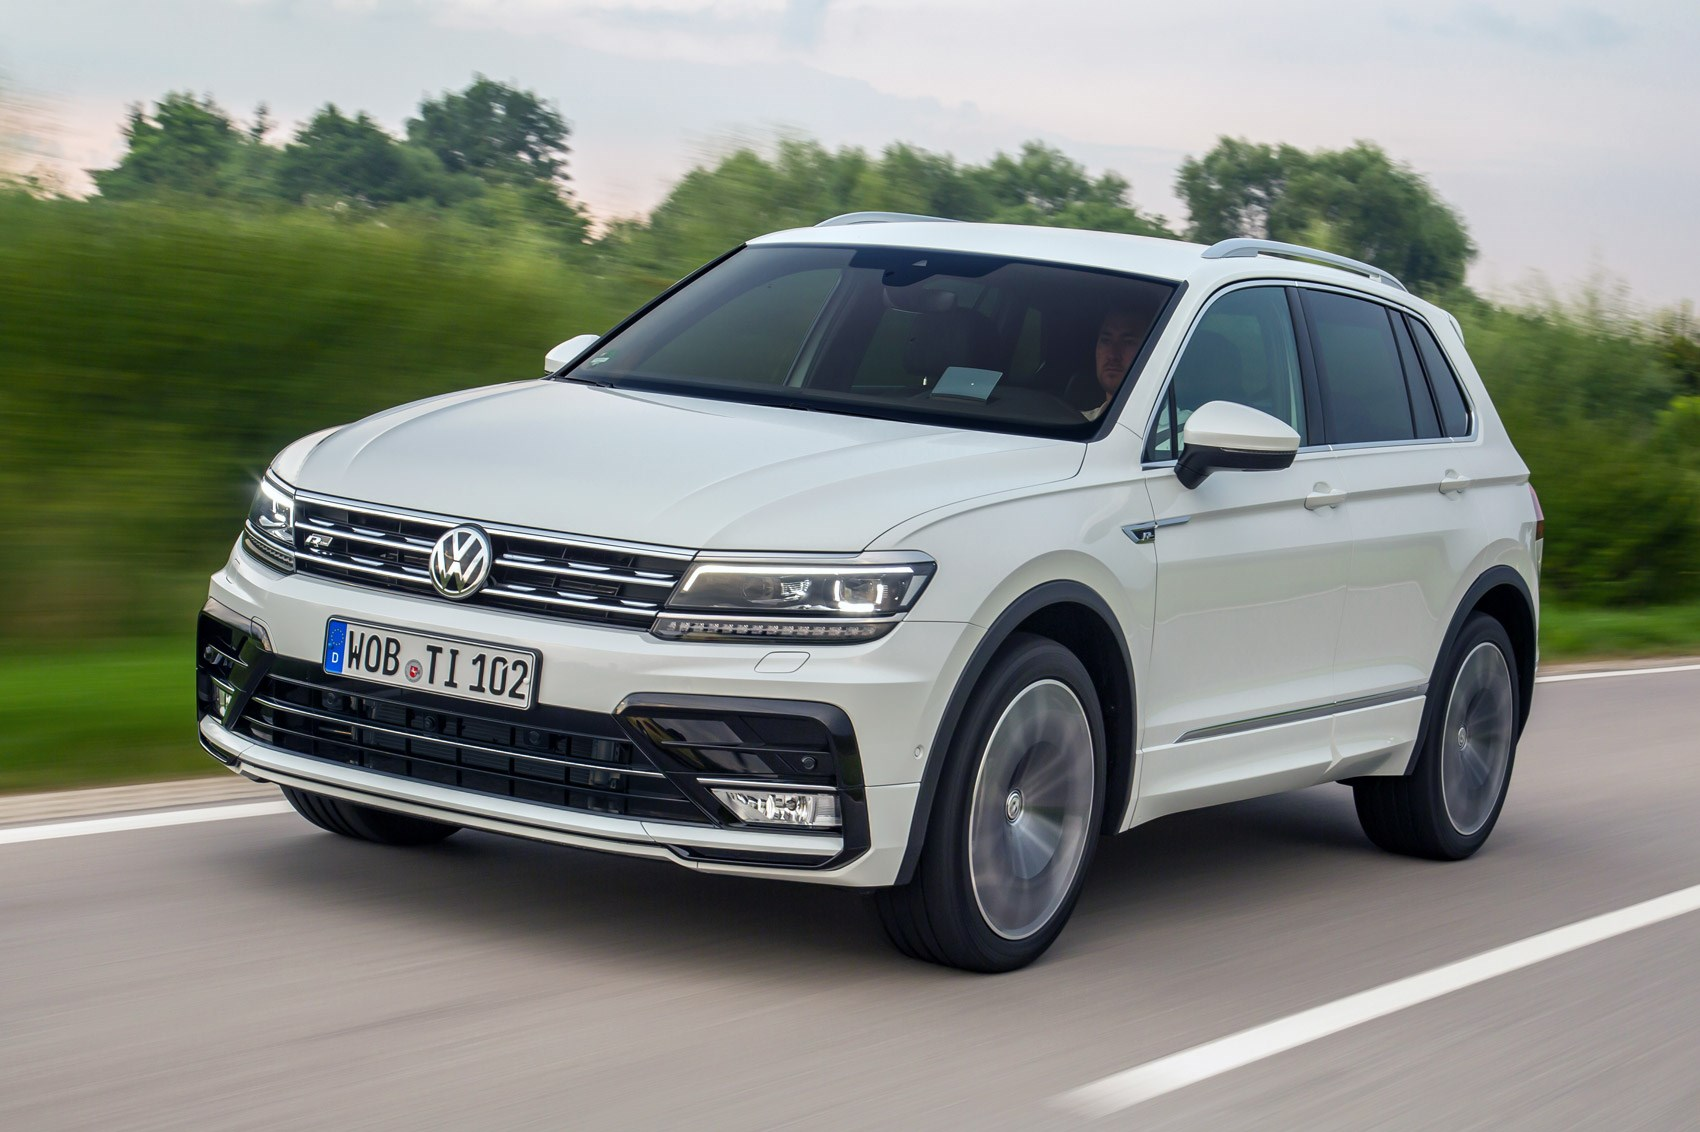 Vw tiguan 2 0 bitdi 240 4motion r line 2016 review